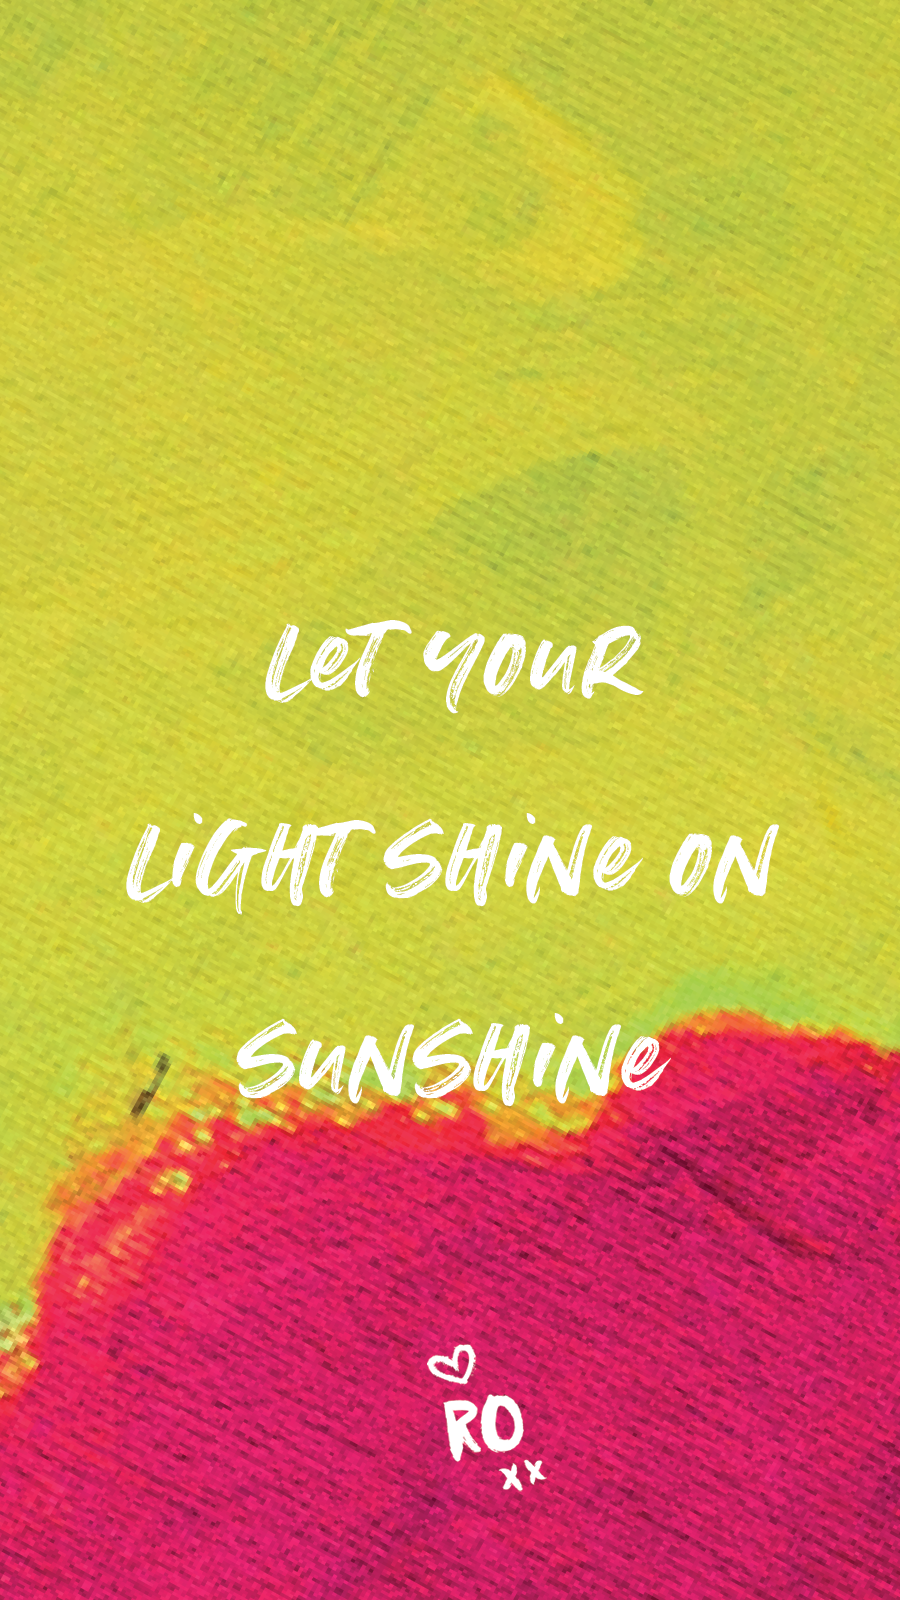 Let Your Light Shine On Sunshine - Ruby Olive Wallpaper